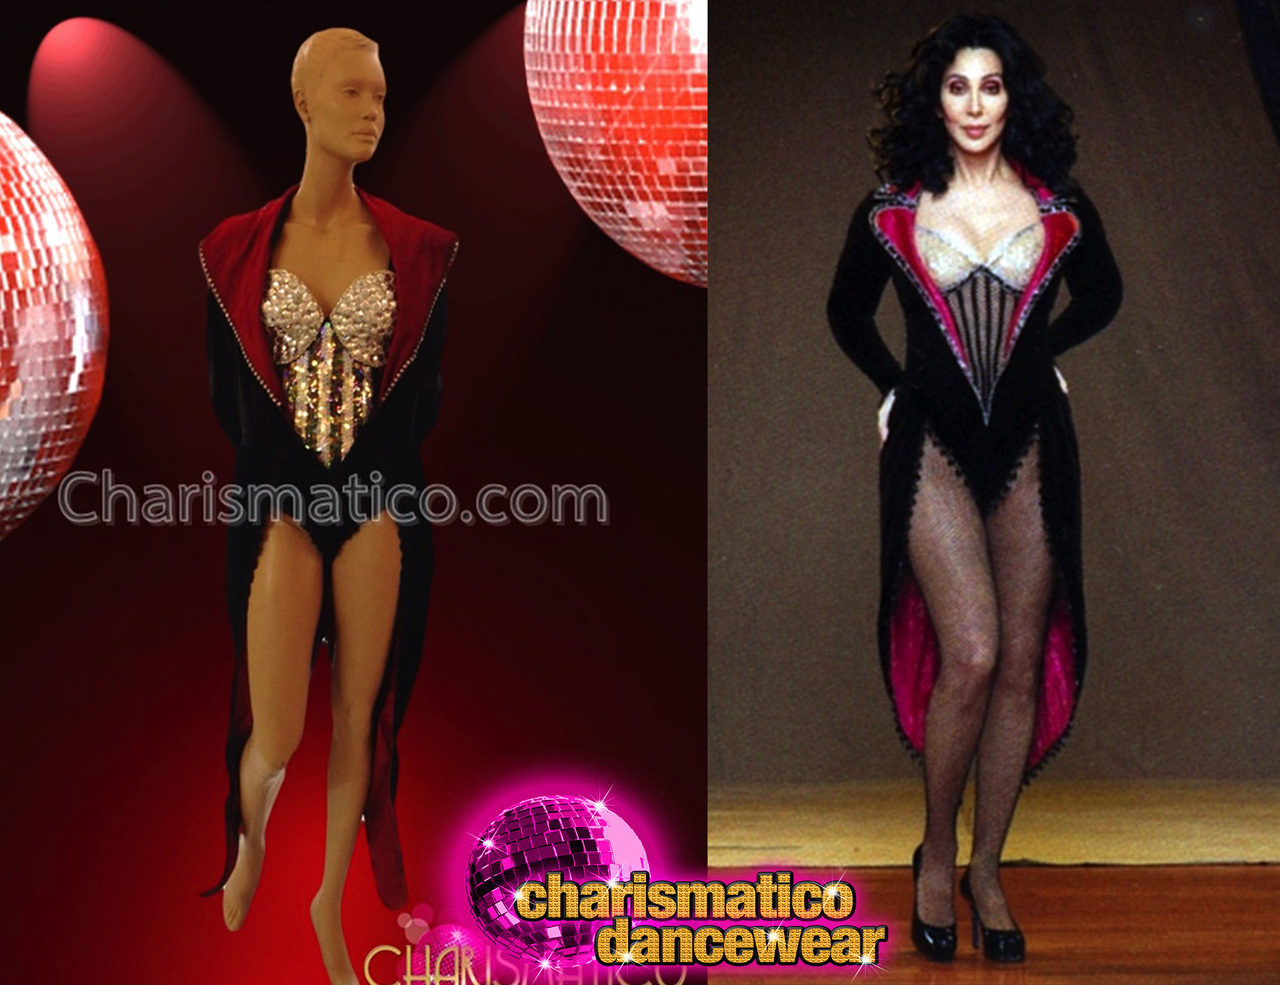 b4a74df3aa1a Charismatico red trimmed ringmaster coat and sequin leotard cher jpg  1280x985 Cher catsuit